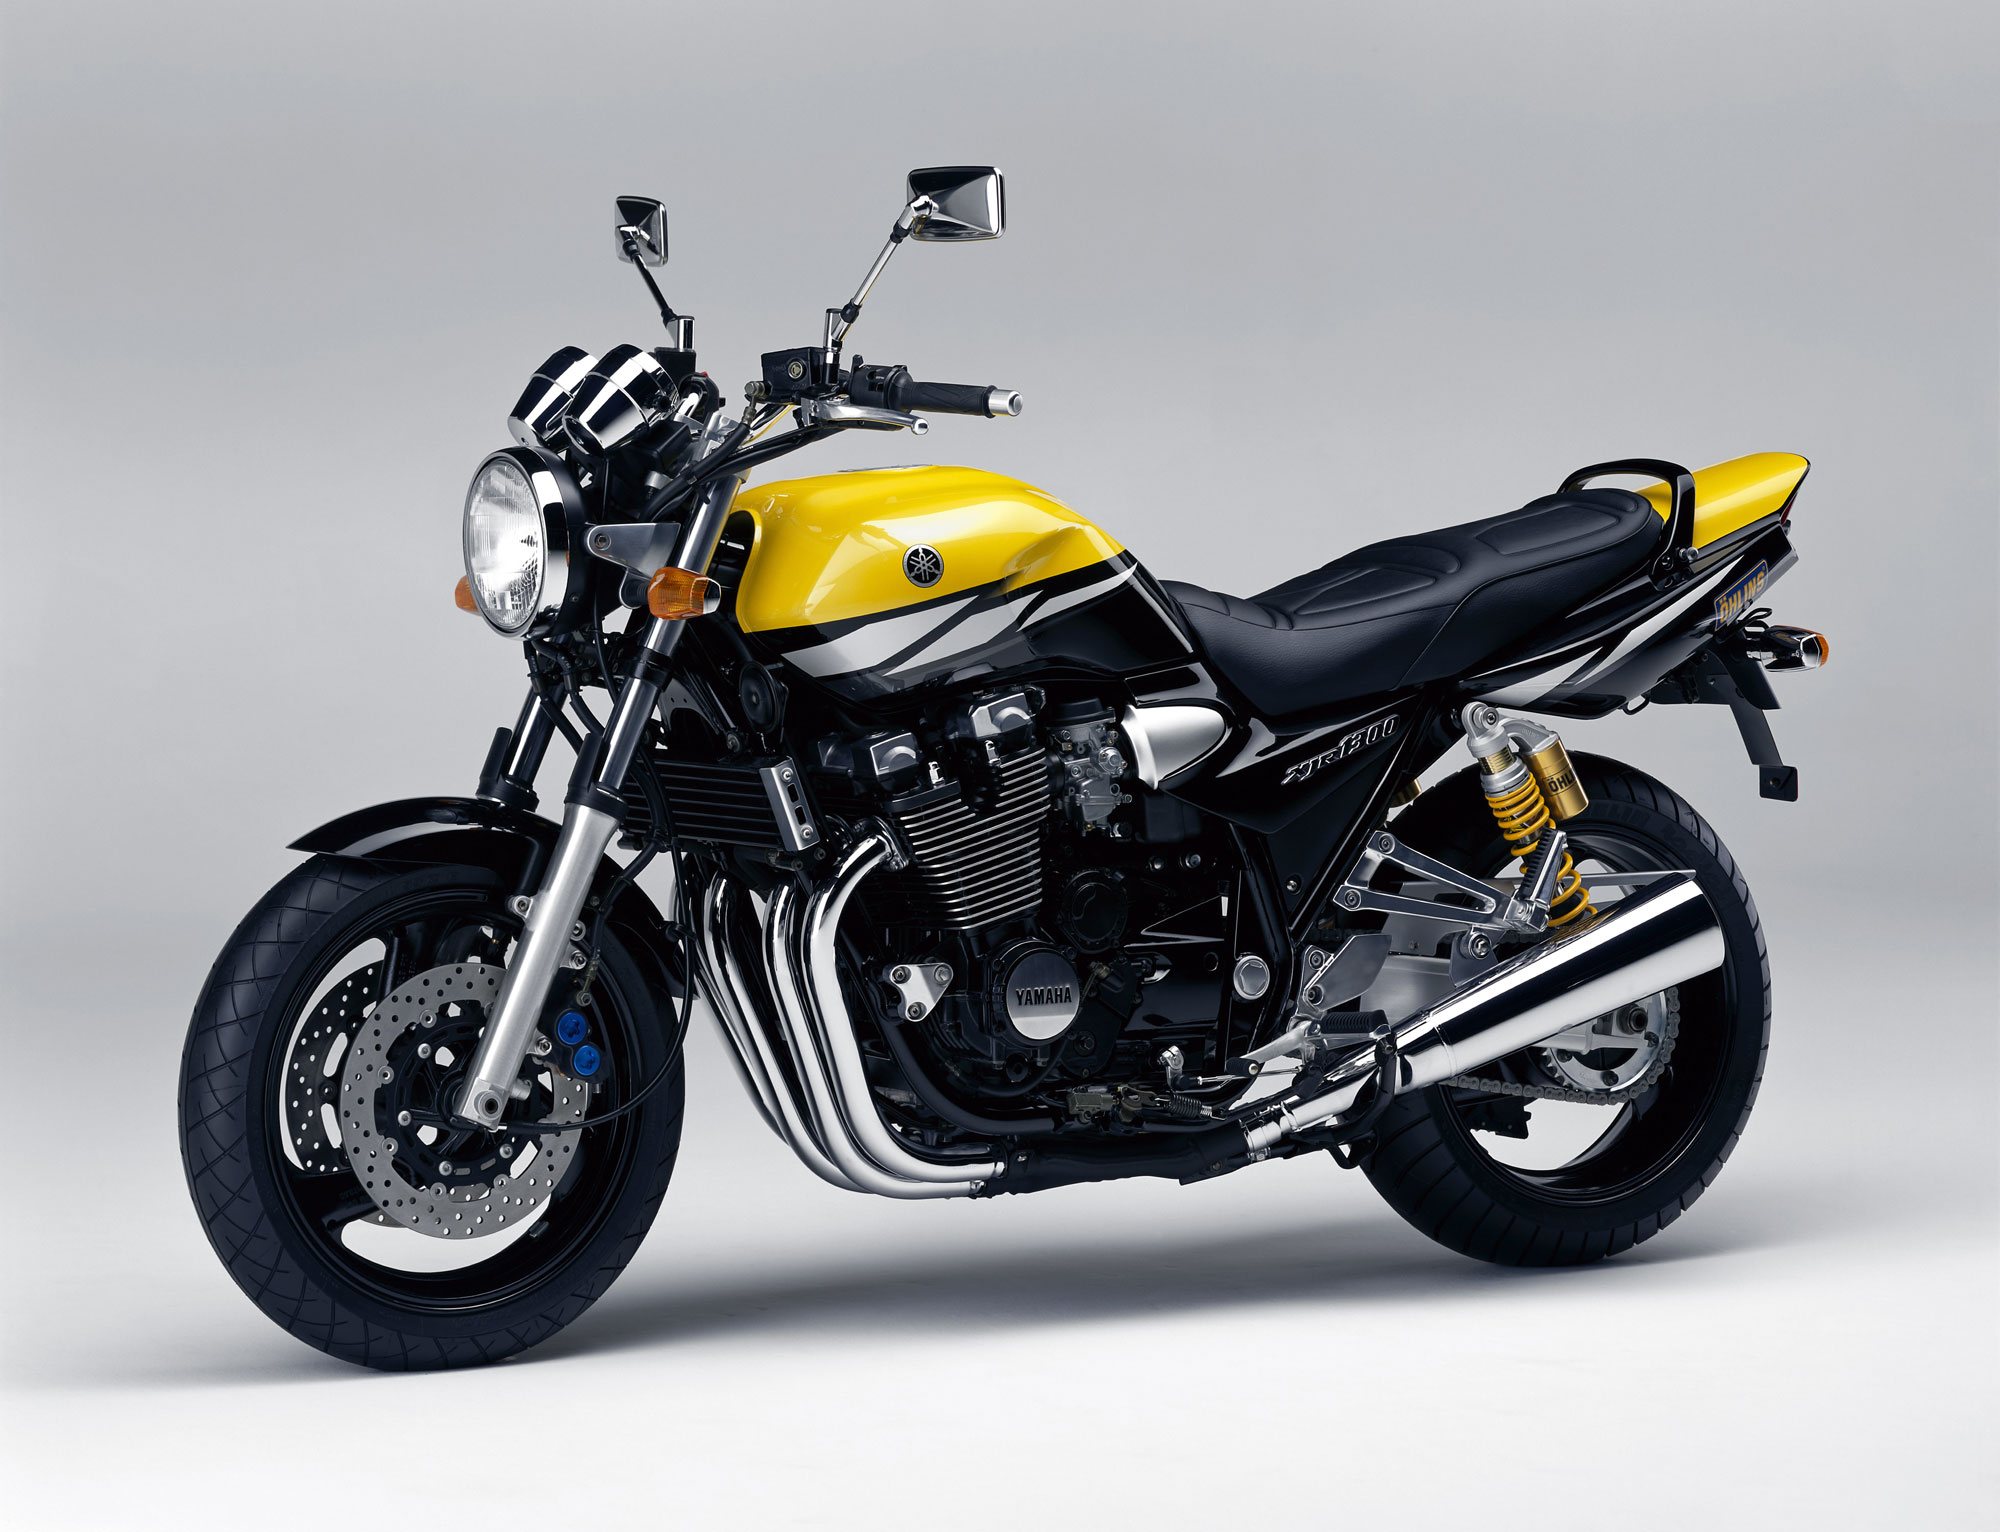 http://www.totalmotorcycle.com/photos/2003models/2003-Yamaha-XJR1300c.jpg